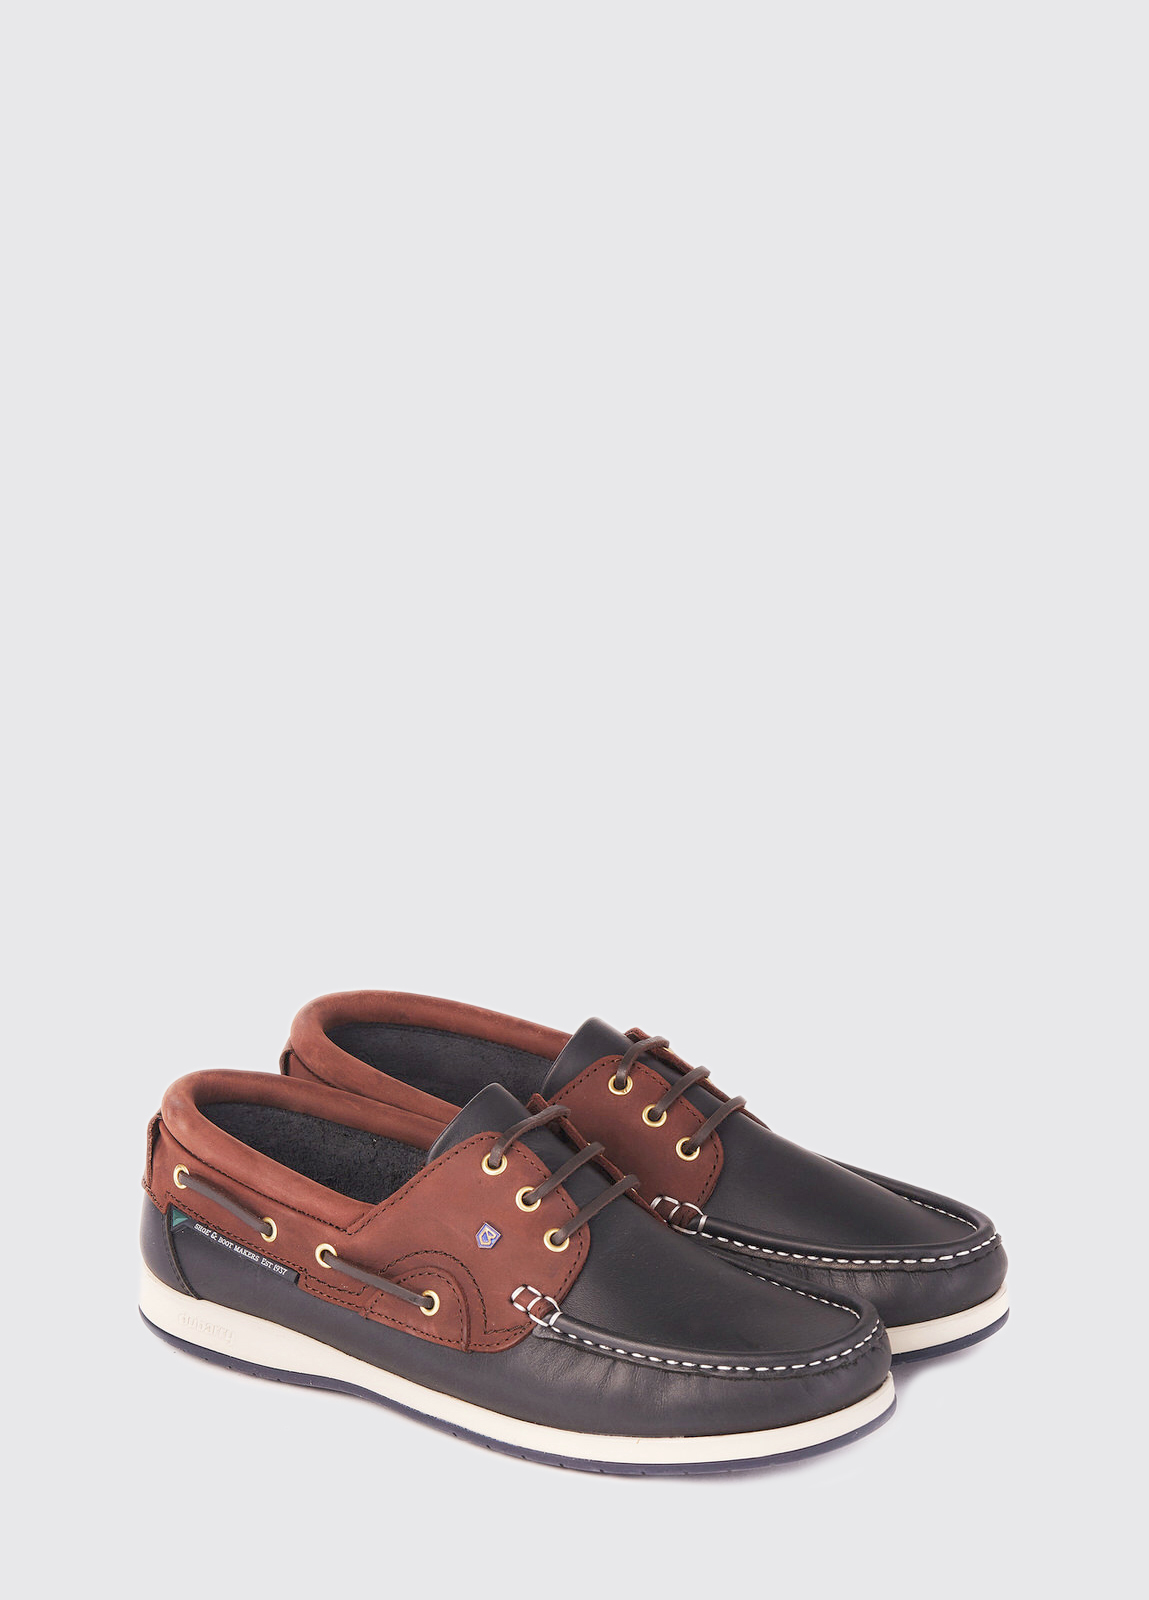 Commodore XLT Deck Shoe - Navy/Brown